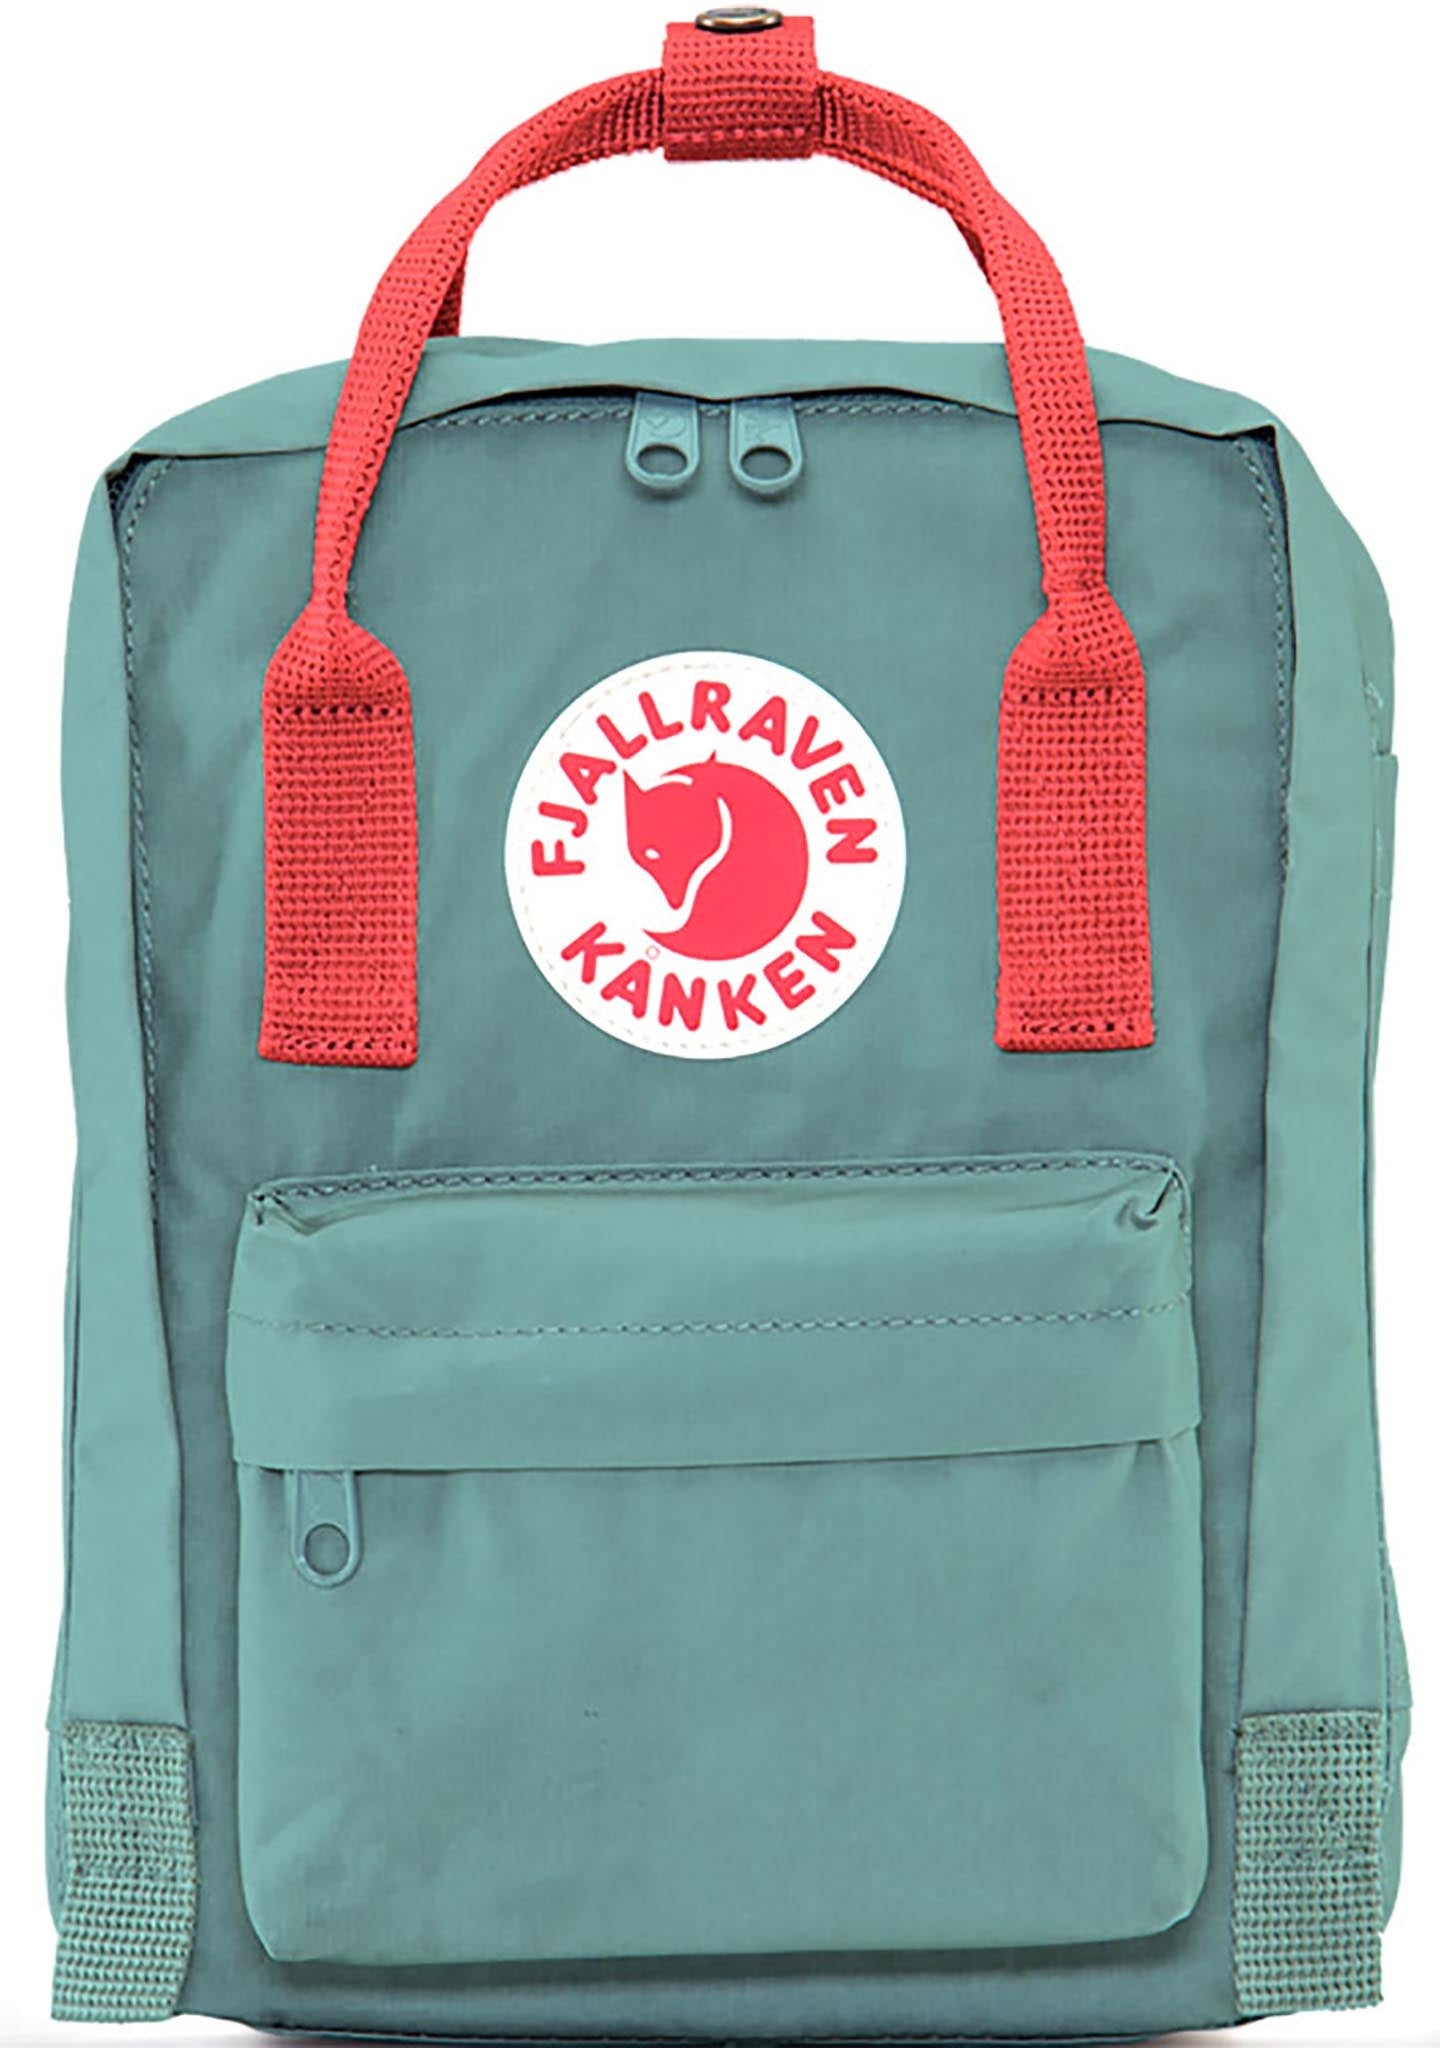 Fjallraven Kanken Mini Backpack in Frost Green/Peach Pink